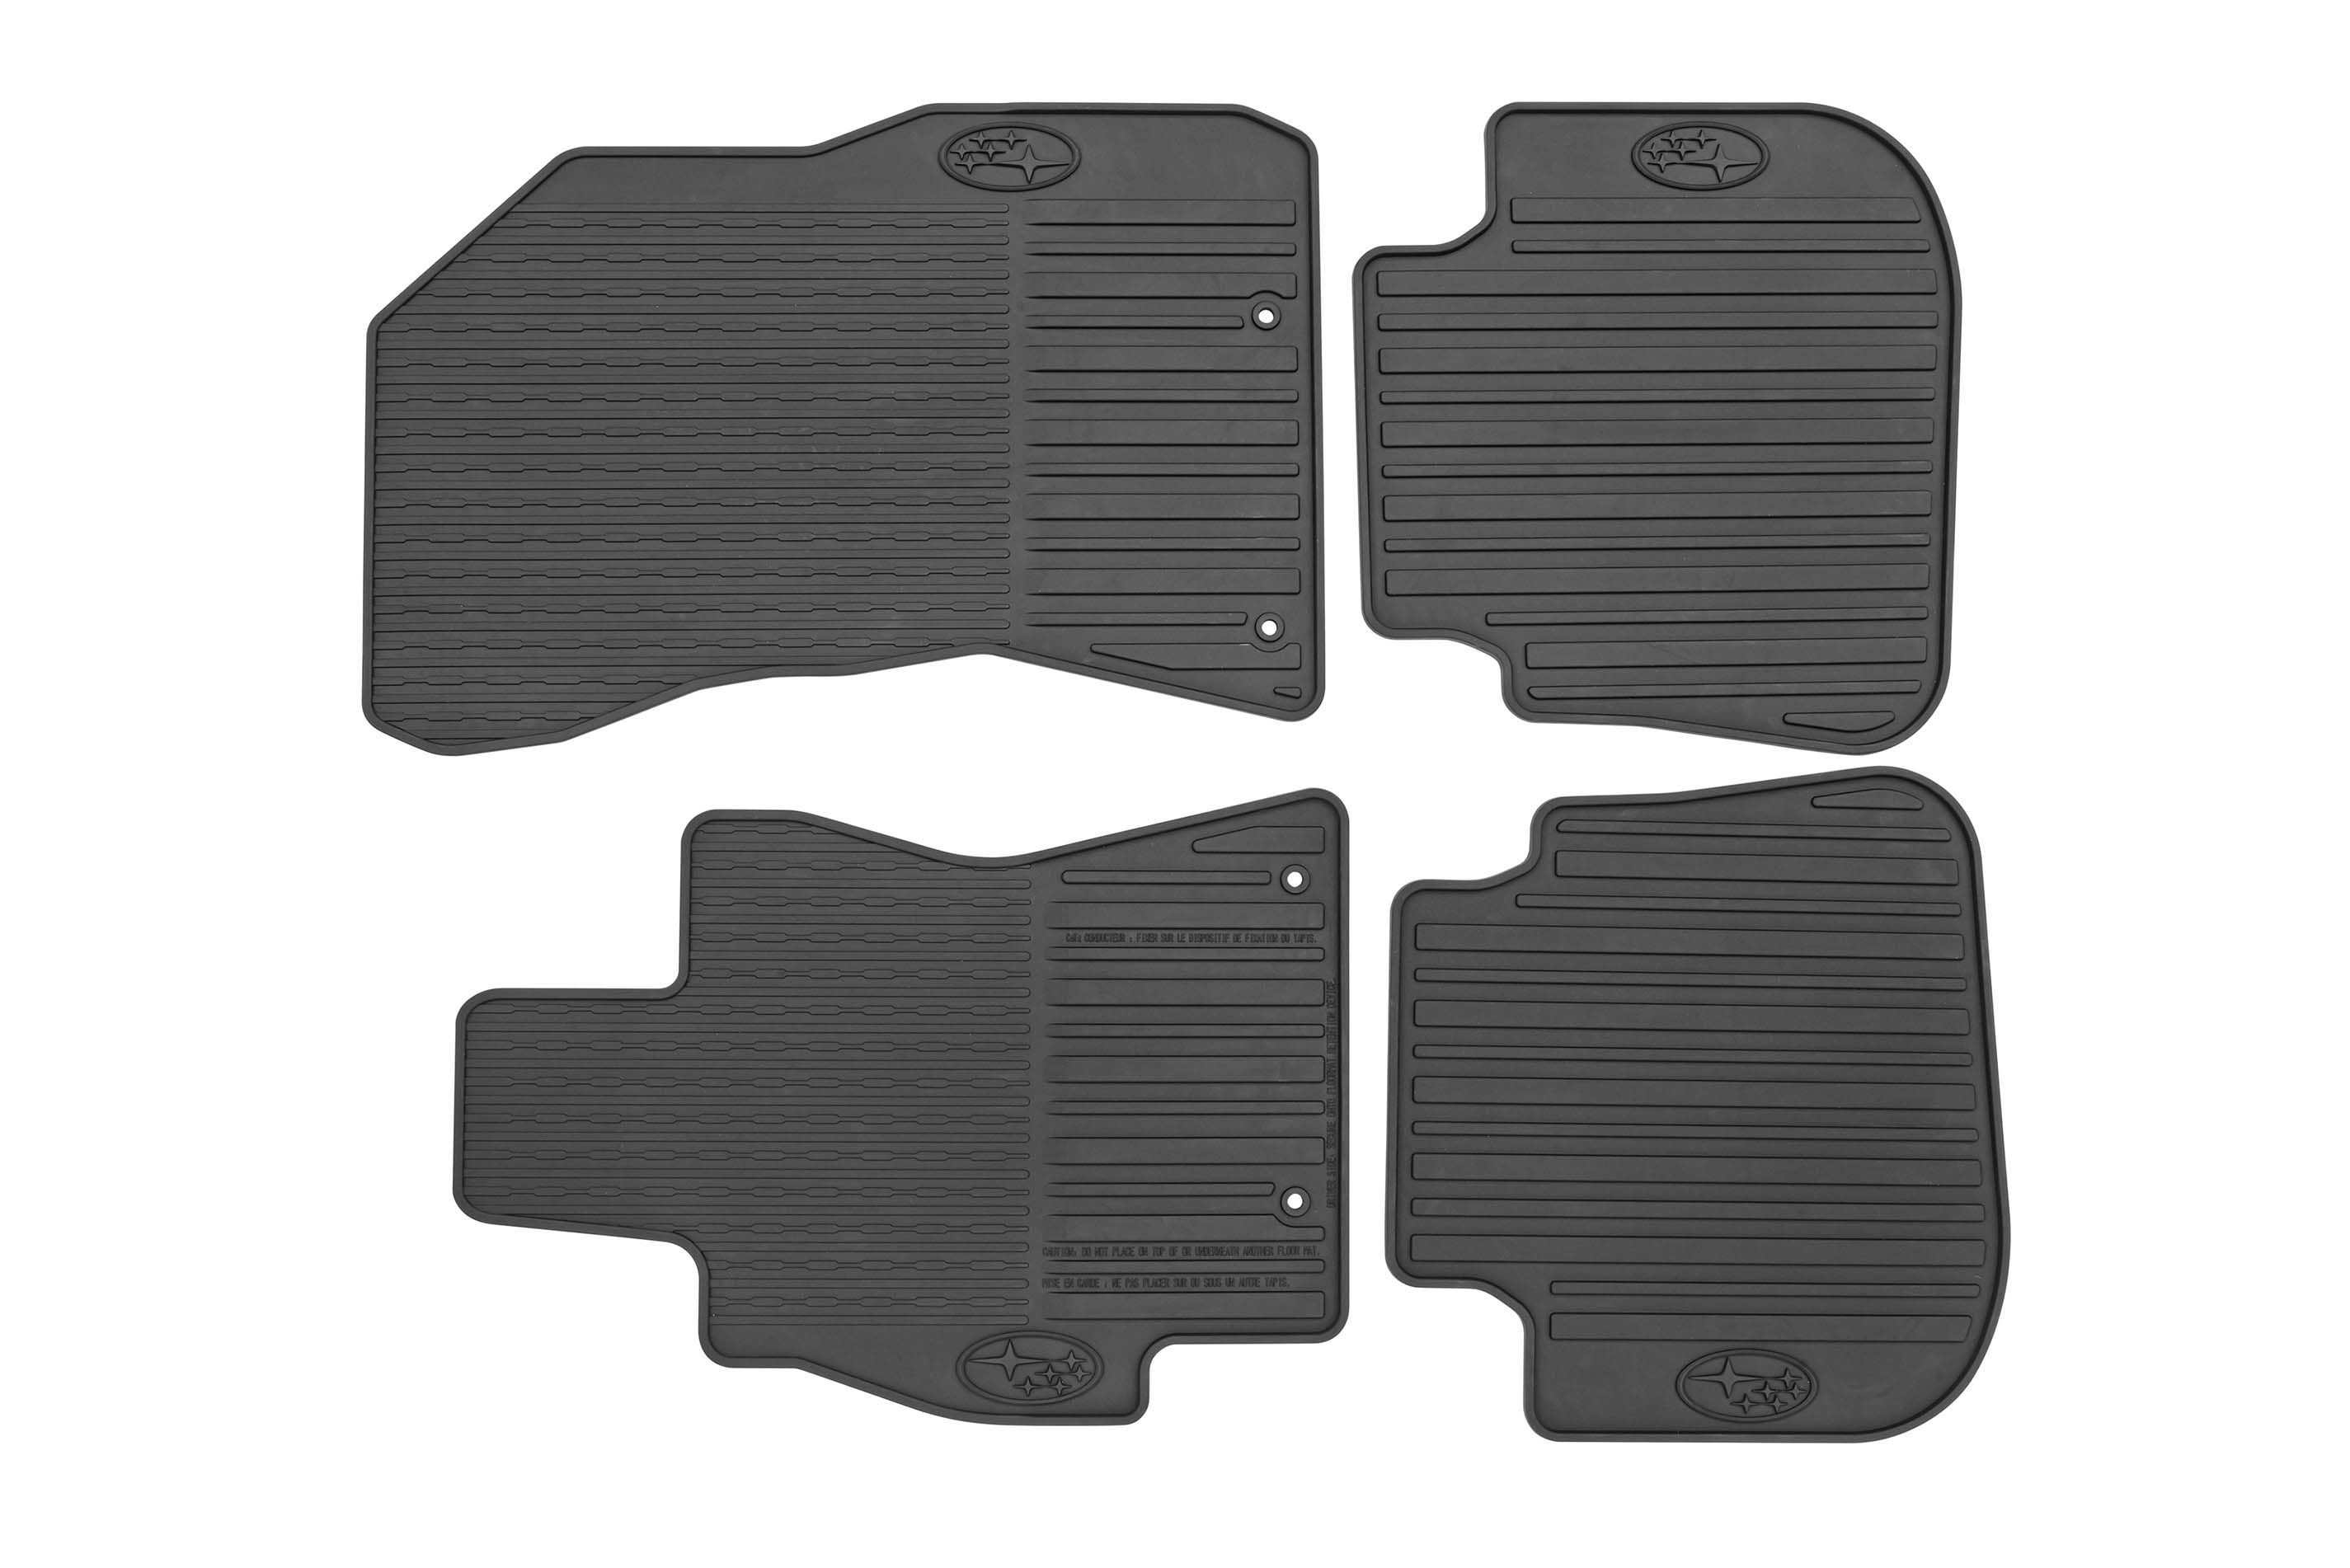 mats vs present floor gen all clublexus forums mat lexus weather weathertech gx